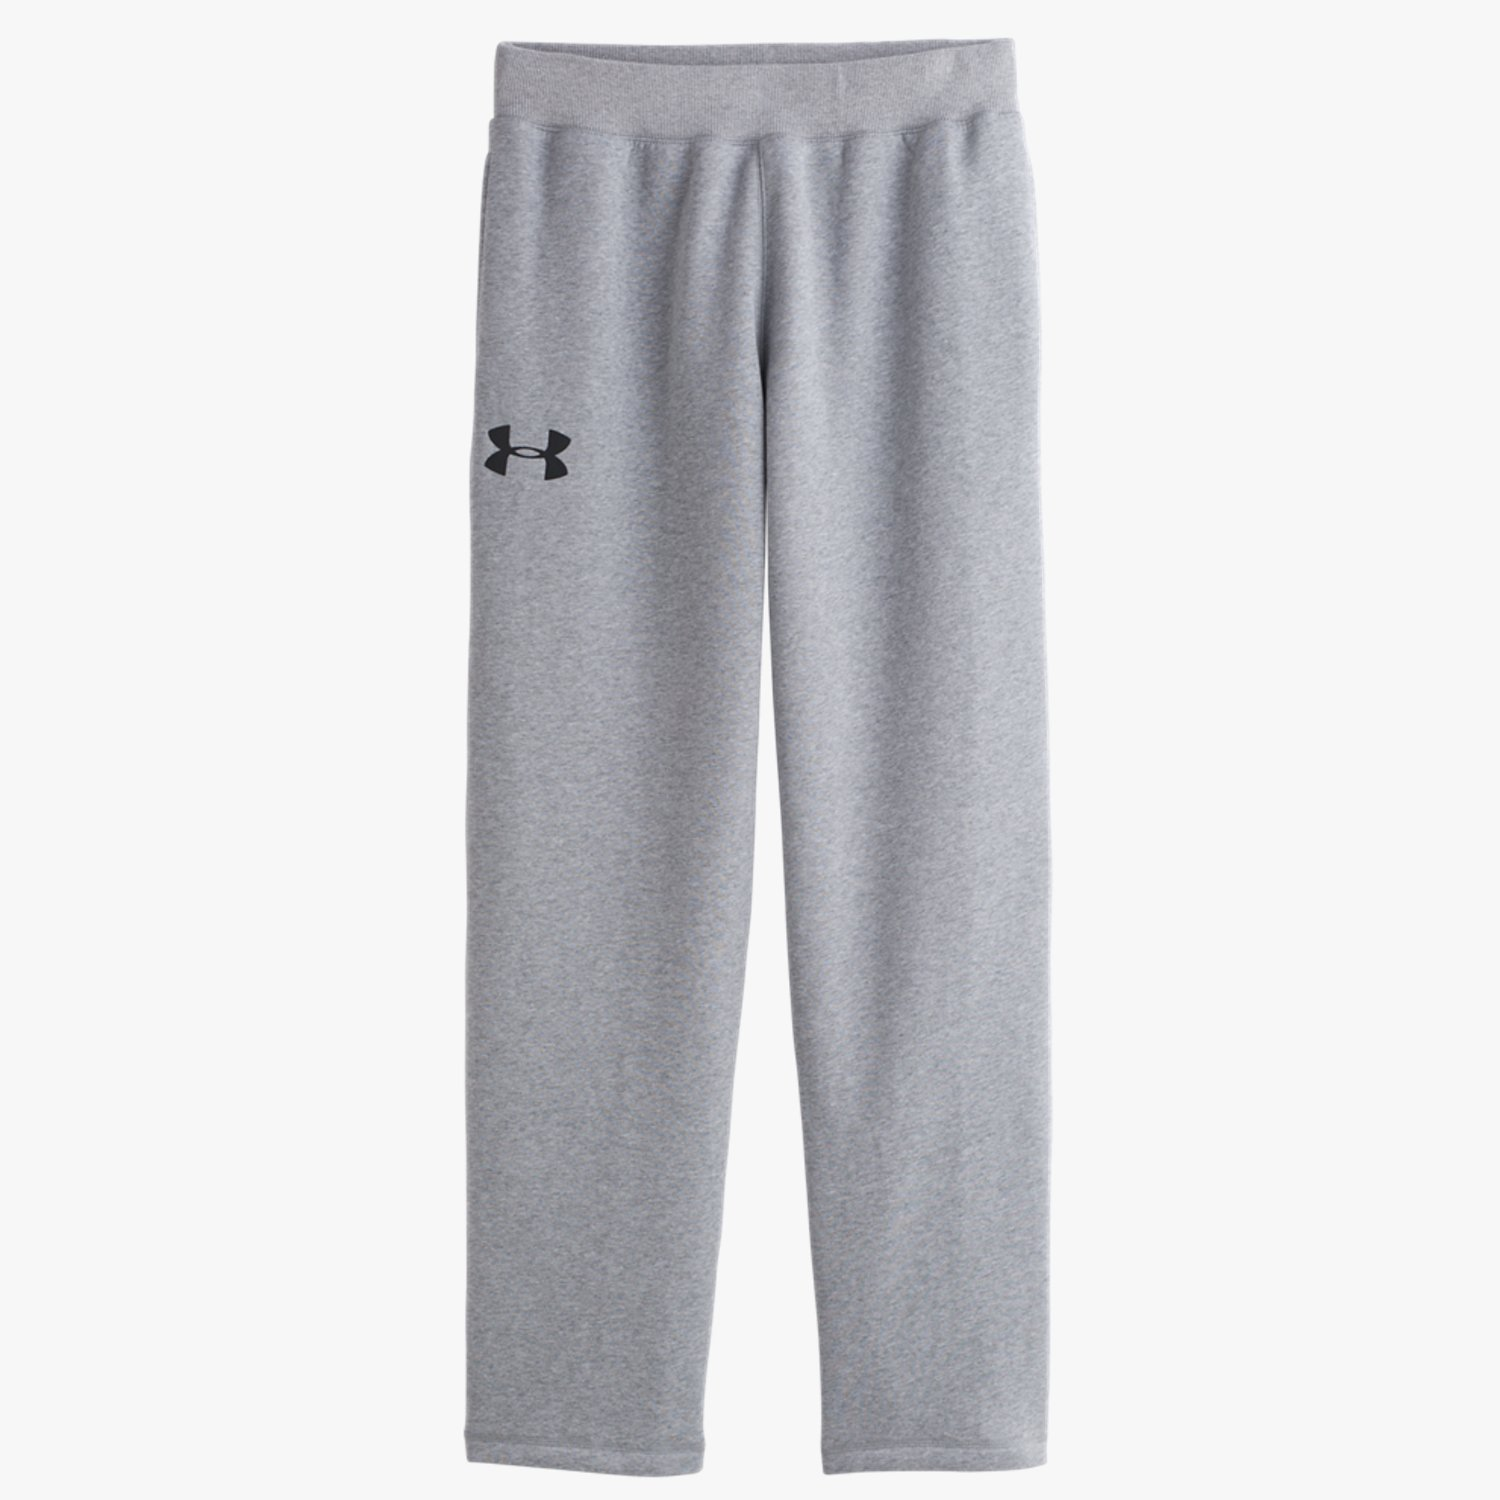 Under Armour UA Storm Rival Trousers True Gray Heather/Black-30